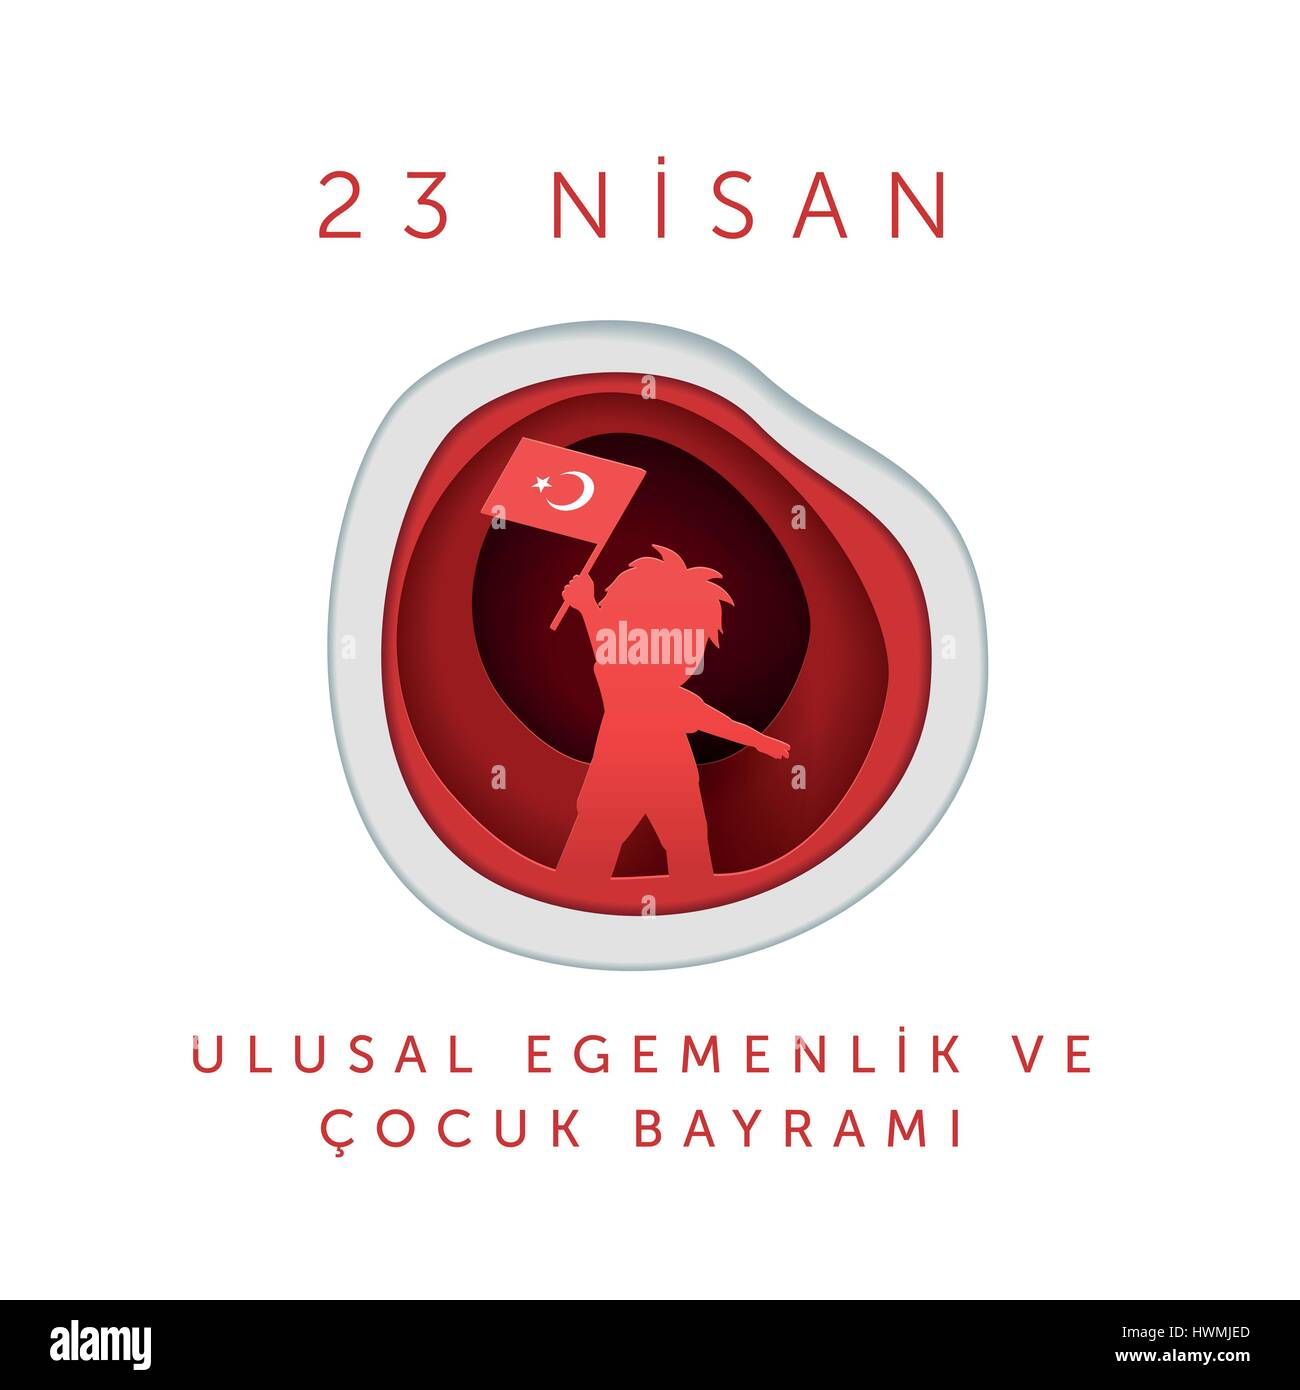 Vector illustration of the 23 Nisan Çocuk Bayrami, April 23 Turkish National Sovereignty and Children's - Stock Vector